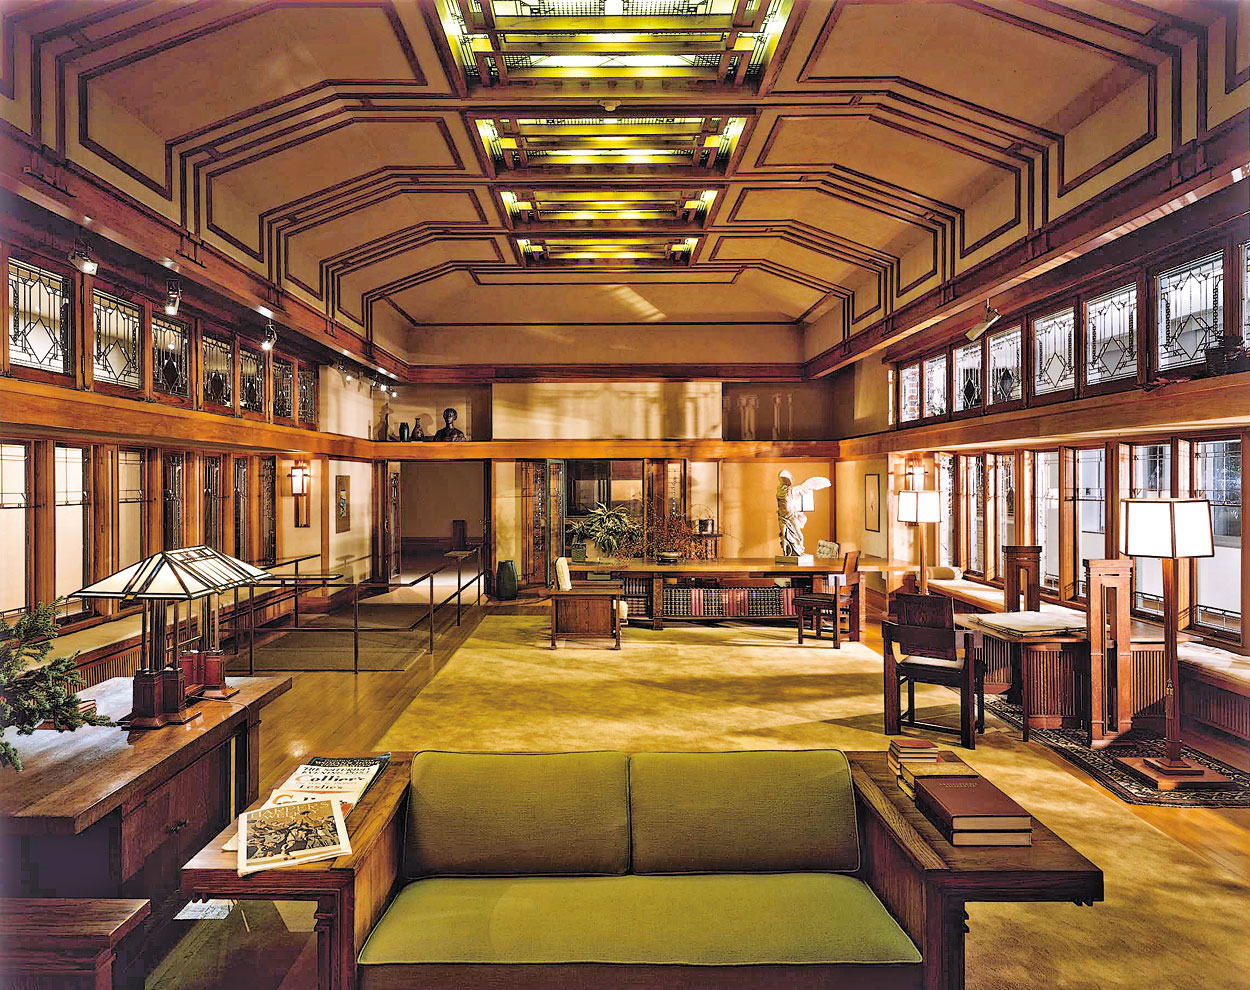 Ten more reasons why i love living in the city that never sleeps hints and echoes Frank lloyd wright the rooms interiors and decorative arts